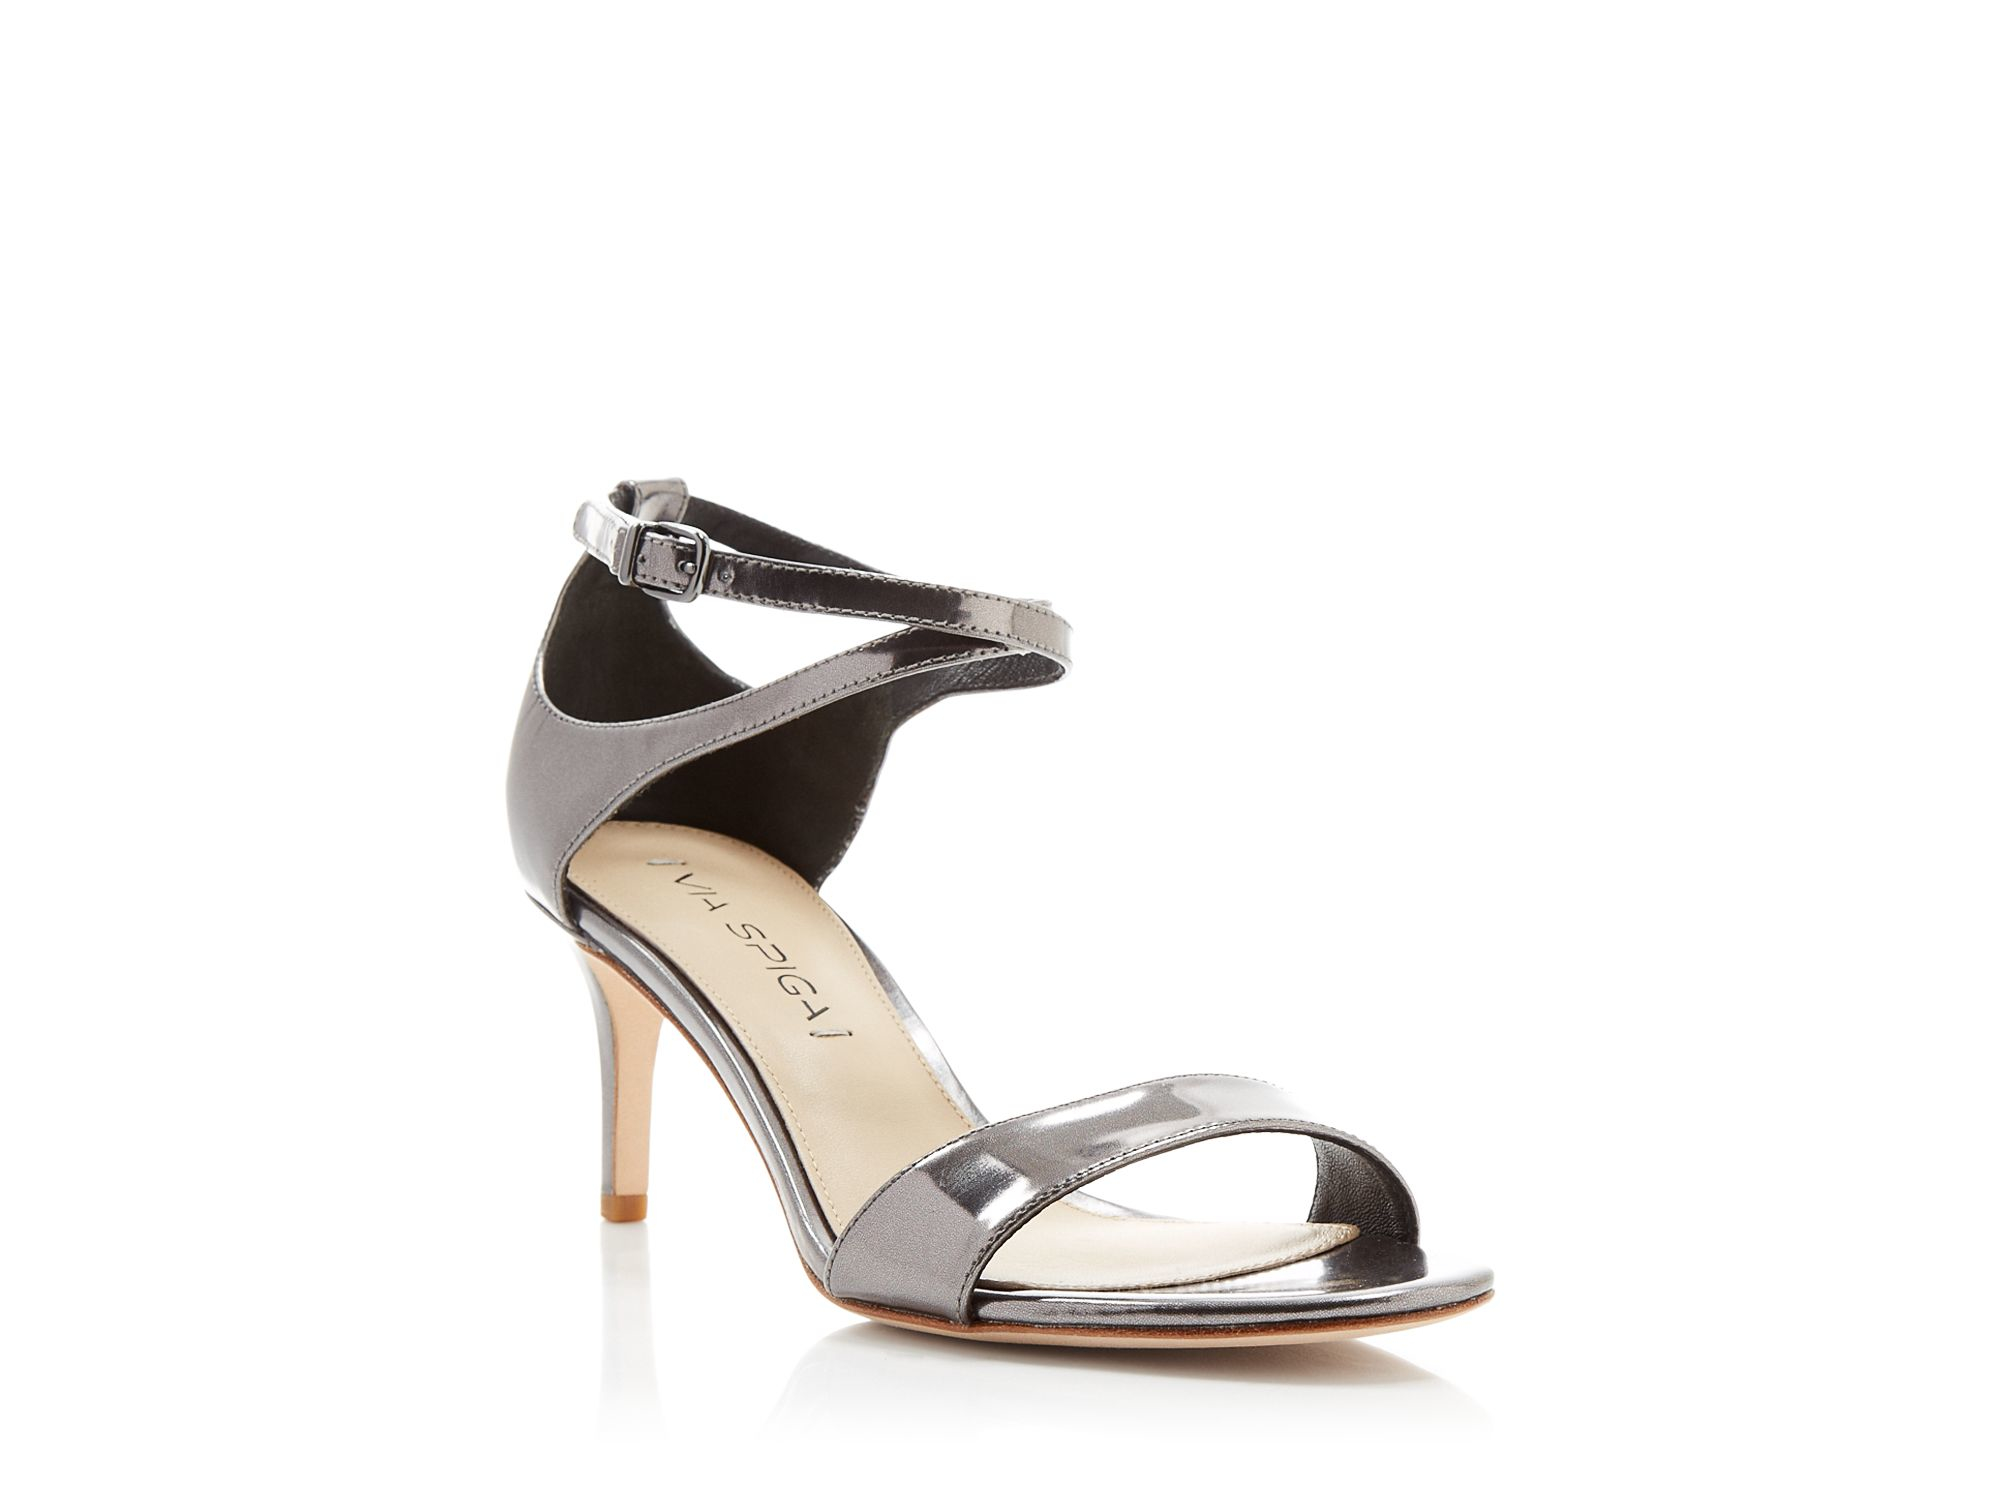 Buy Steve Madden Women's Carrson Dress Sandal and other Pumps at loweredlate.ml Our wide selection is eligible for free shipping and free returns.